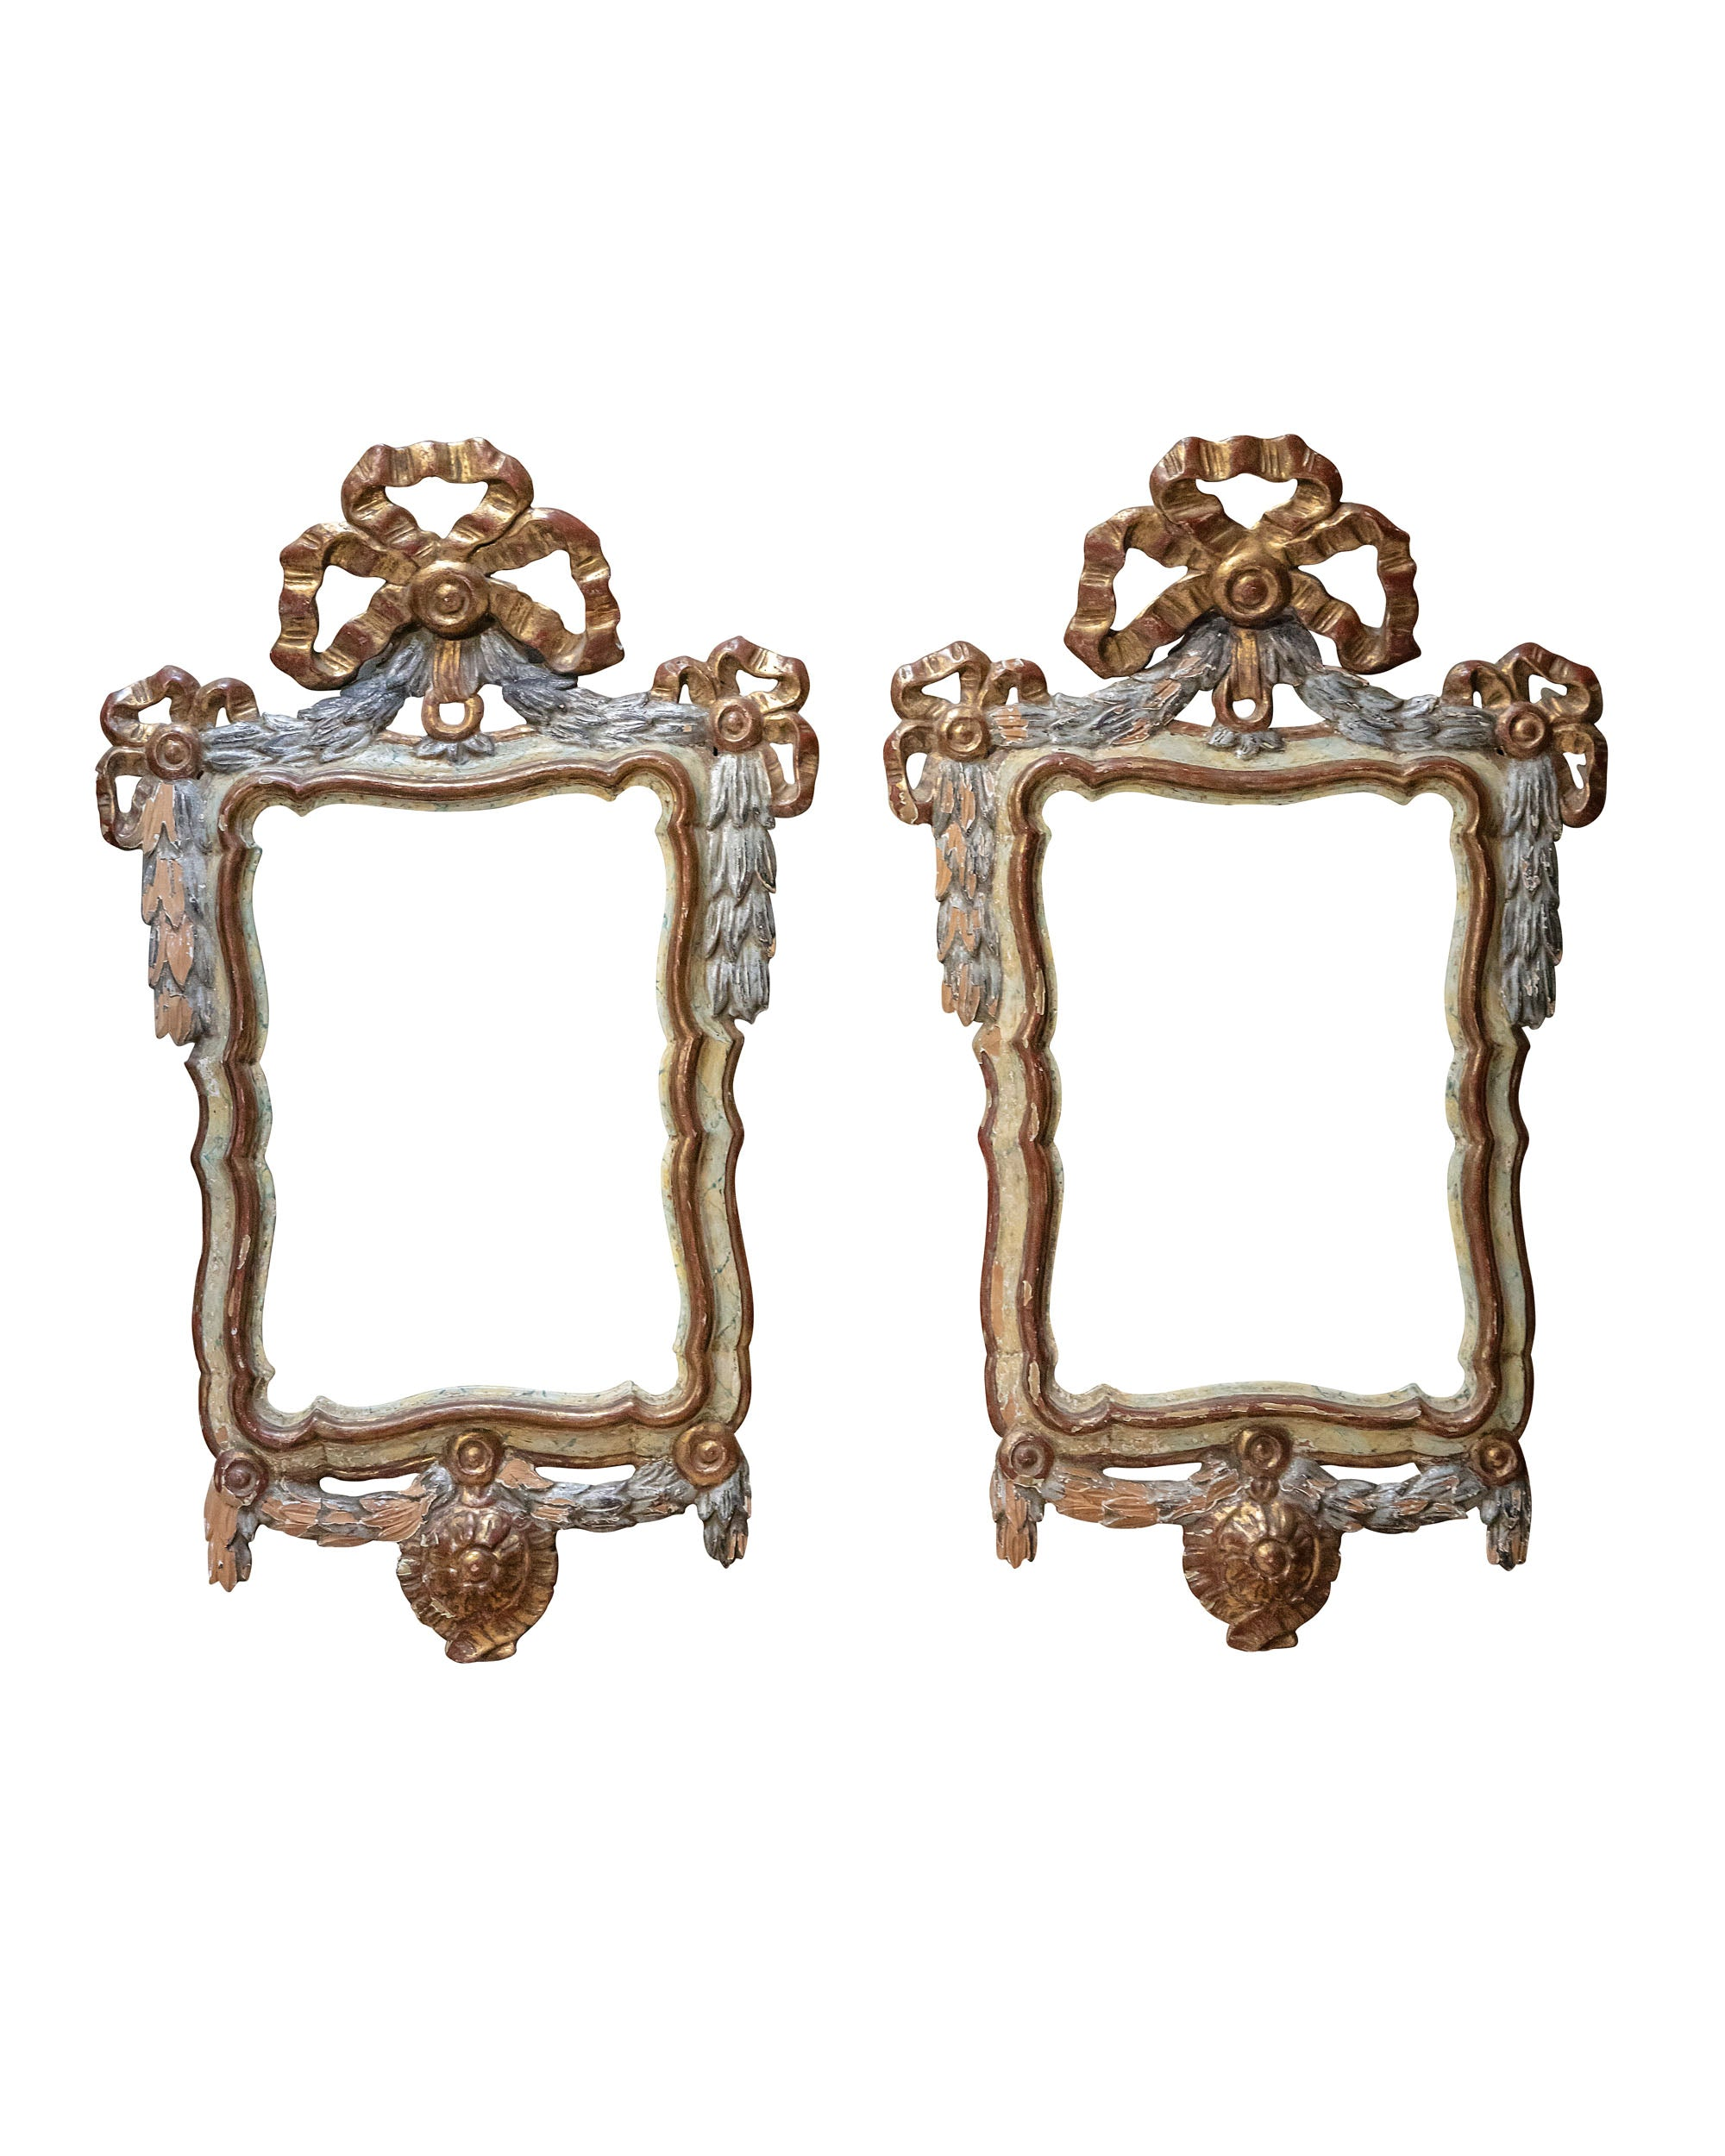 Pair of polychrome wood frames topped by garland and golden bow. XVIIIth century